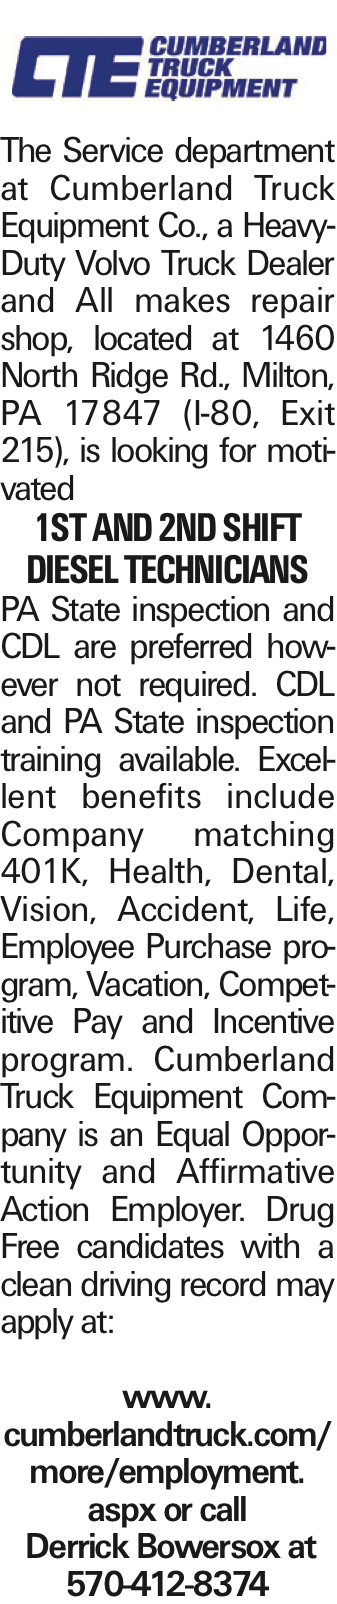 The Service department at Cumberland Truck Equipment Co., a Heavy-Duty Volvo Truck Dealer and All makes repair shop, located at 1460 North Ridge Rd., Milton, PA 17847 (I-80, Exit 215), is looking for motivated 1st and 2nd Shift Diesel Technicians PA State inspection and CDL are preferred however not required. CDL and PA State inspection training available. Excellent benefits include Company matching 401K, Health, Dental, Vision, Accident, Life, Employee Purchase program, Vacation, Competitive Pay and Incentive program. Cumberland Truck Equipment Company is an Equal Opportunity and Affirmative Action Employer. Drug Free candidates with a clean driving record may apply at: www. cumberlandtruck.com/more/employment. aspx or call Derrick Bowersox at 570-412-8374